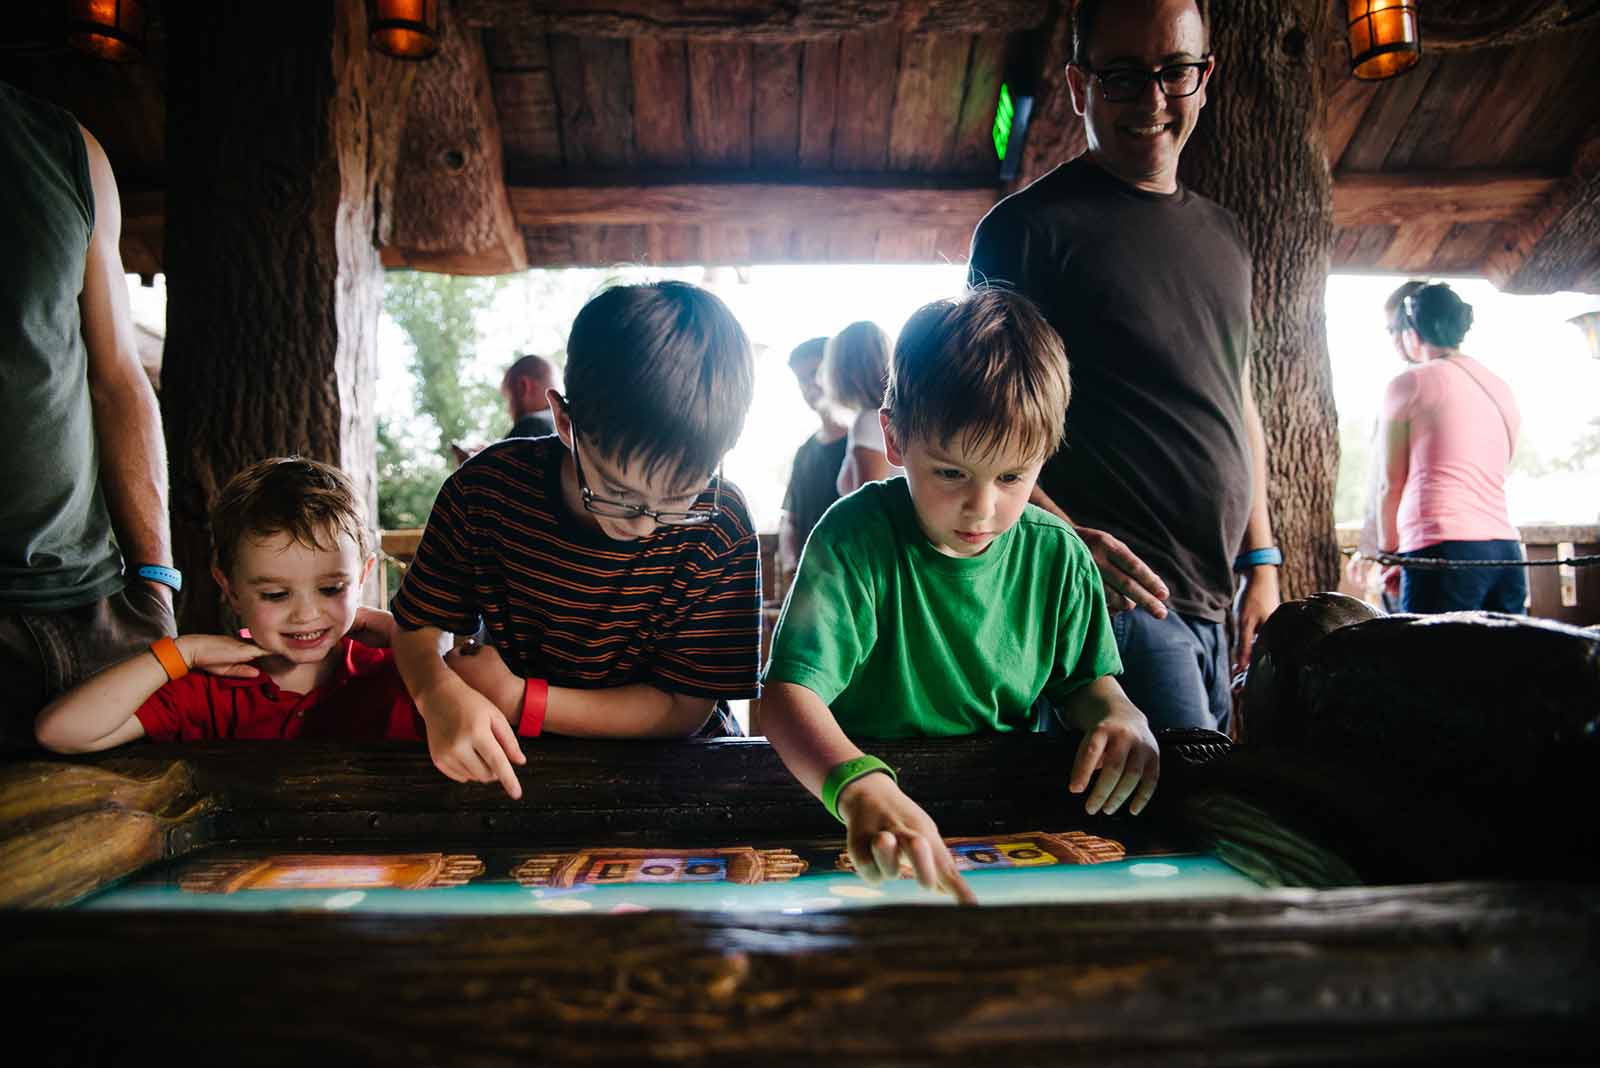 Disney photo of boys looking at a screen during down time